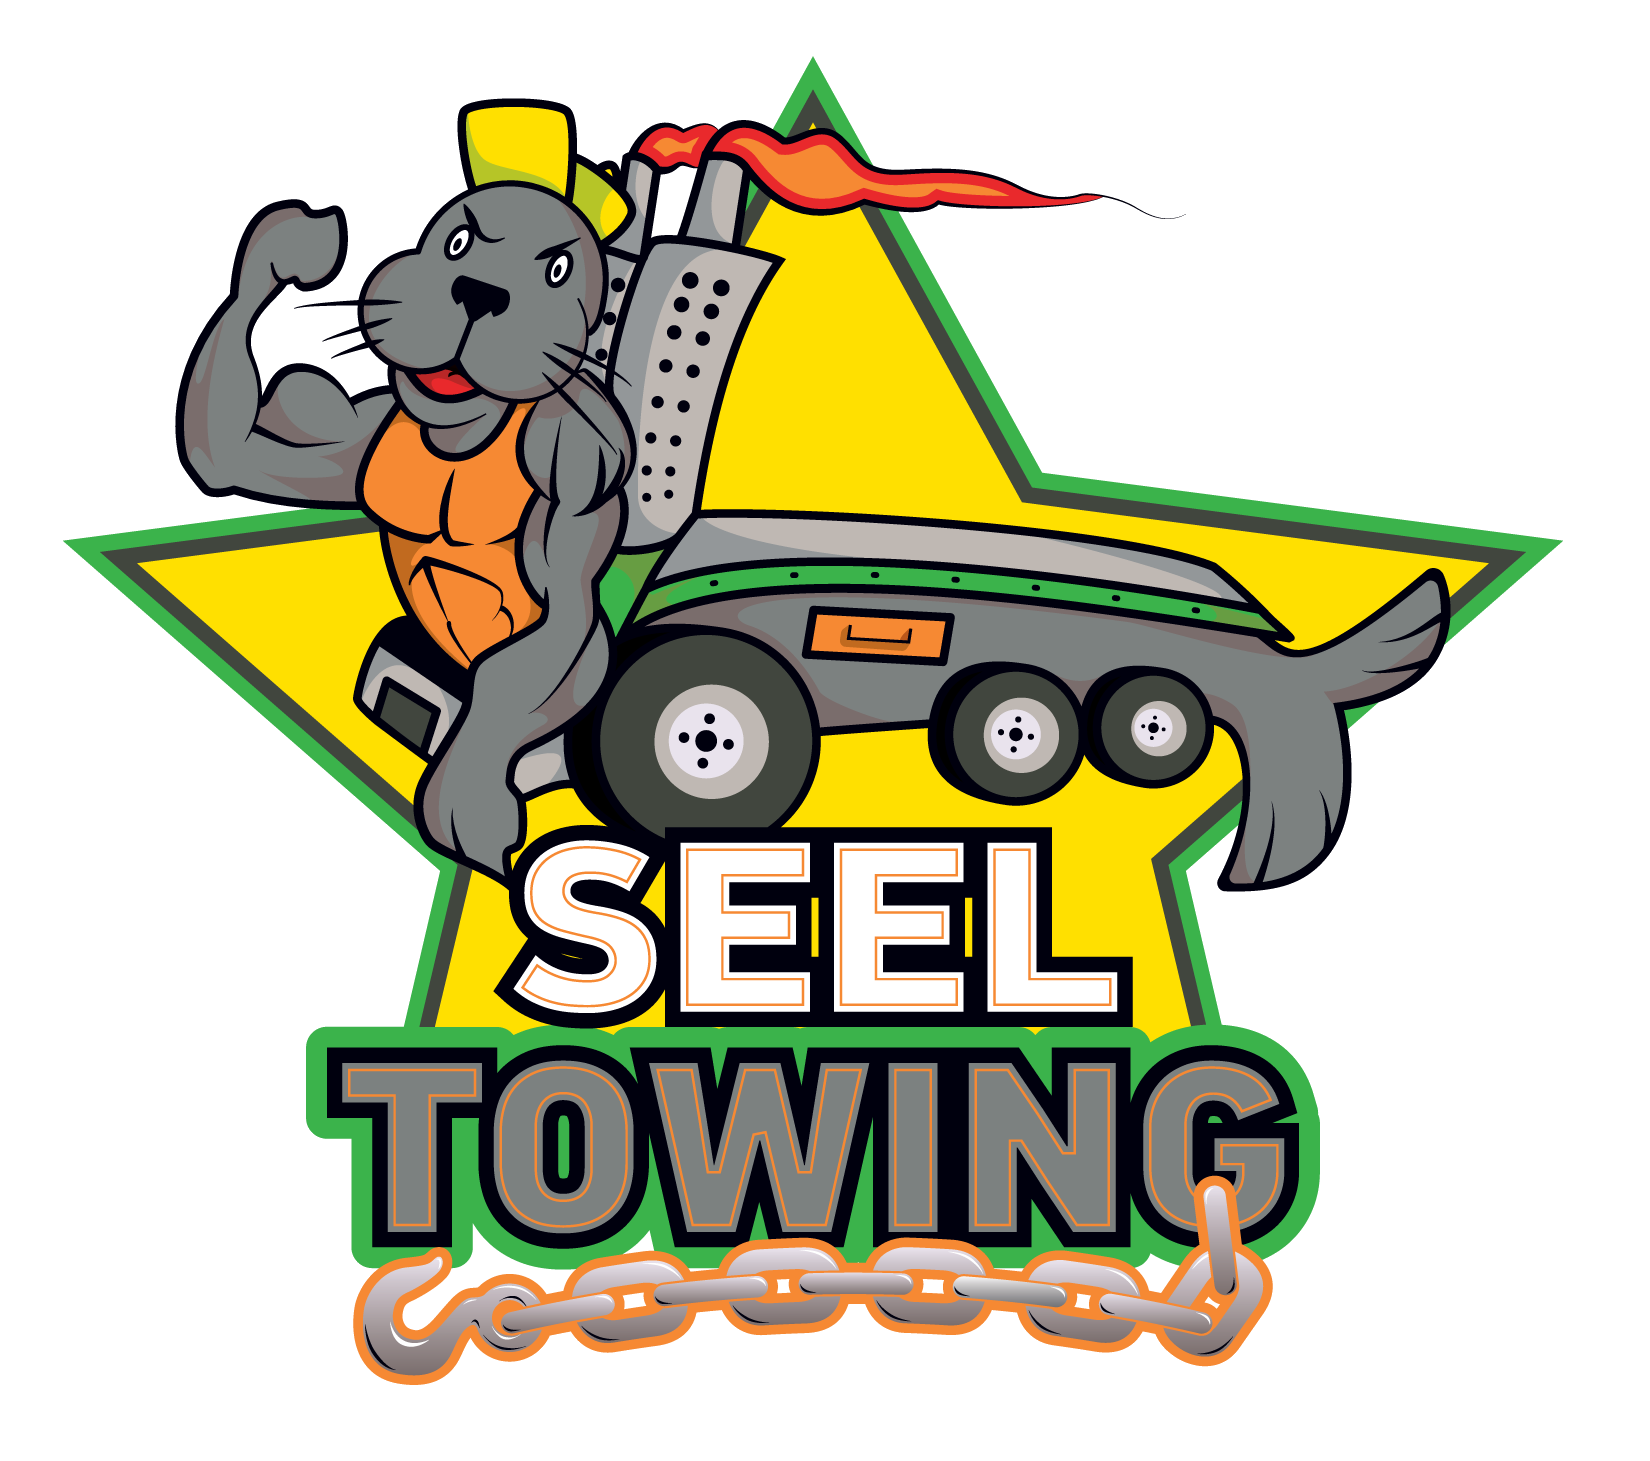 Car parking lot clipart image library stock Calgary Impound Lot Towing | SEEL Towing Calgary image library stock